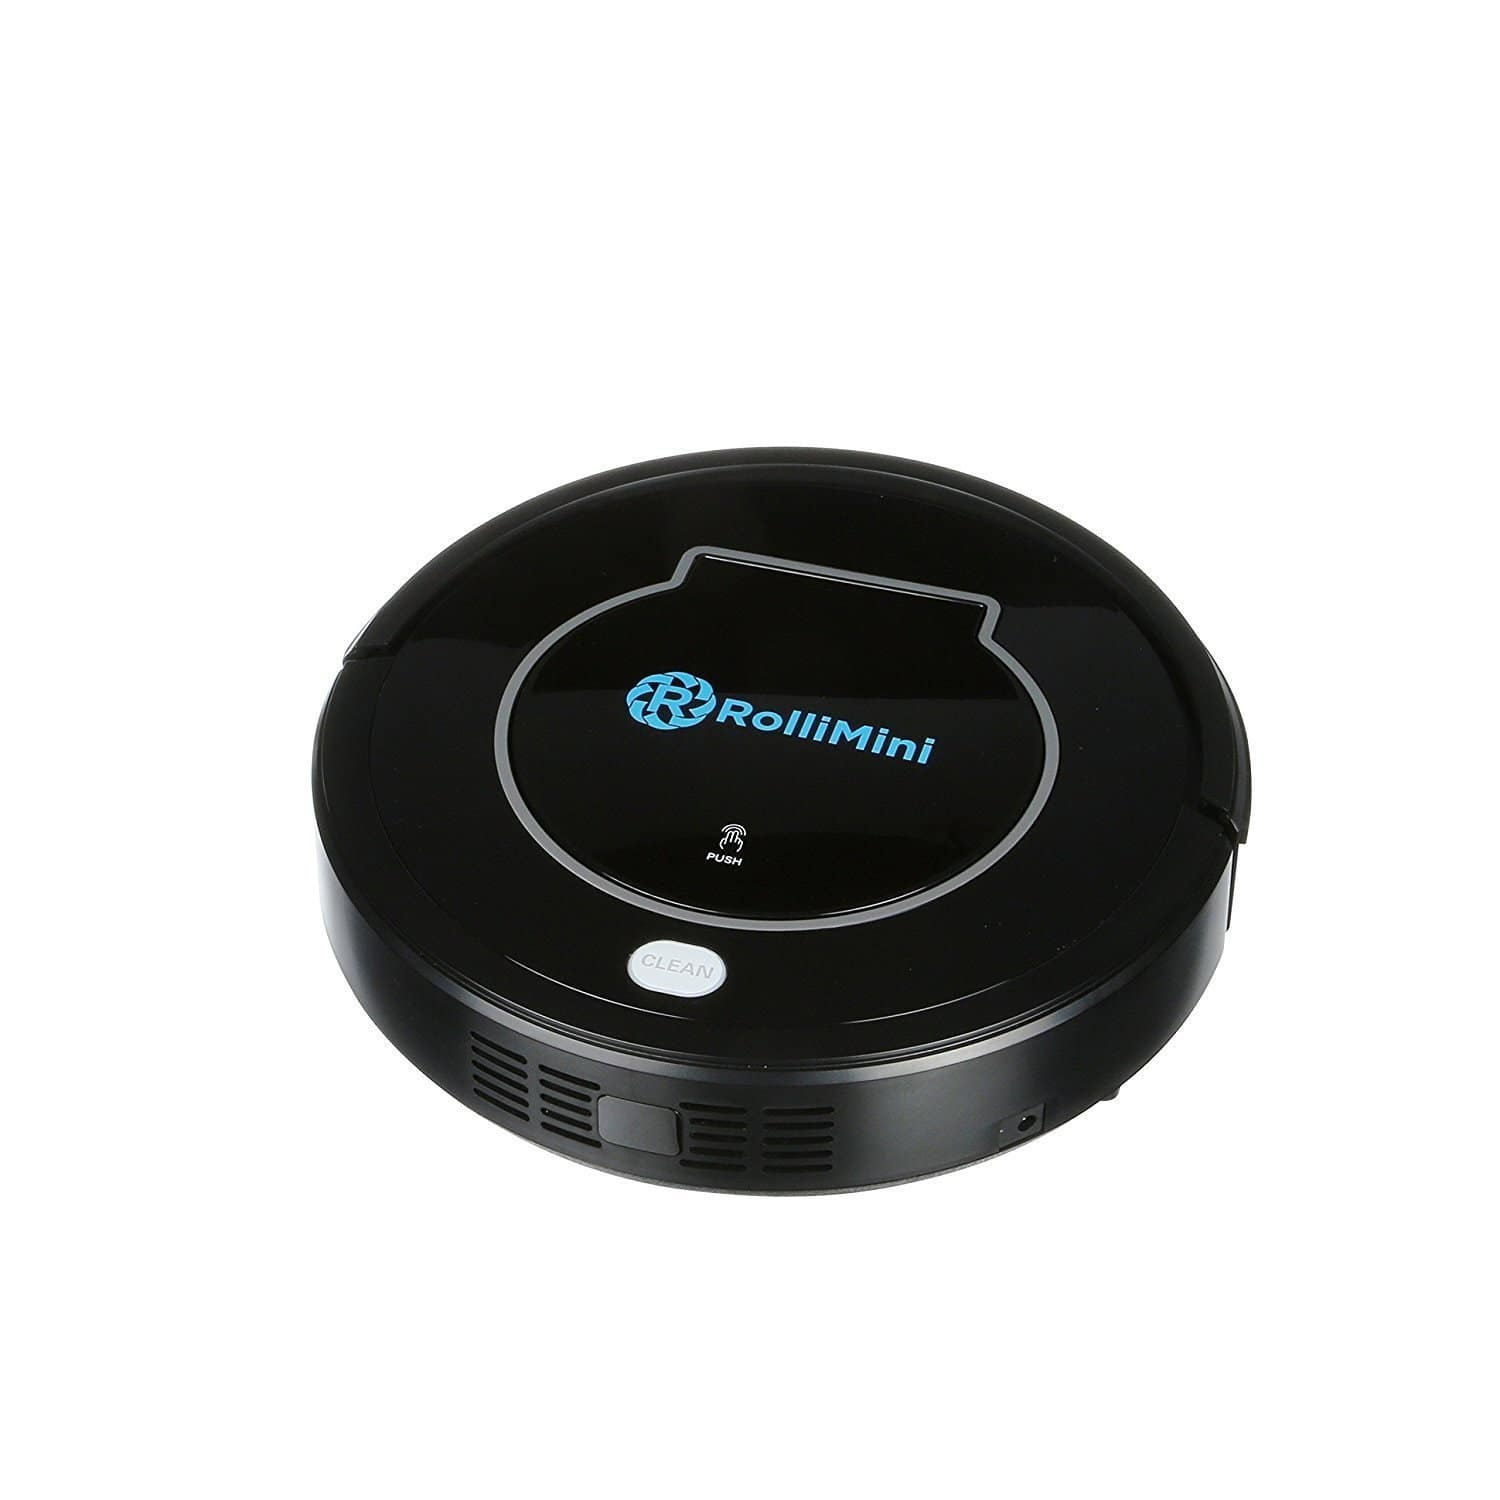 ROLLIBOT MINI BL100 – Quiet Robotic Vacuum Cleaner for $99.99 with FSH